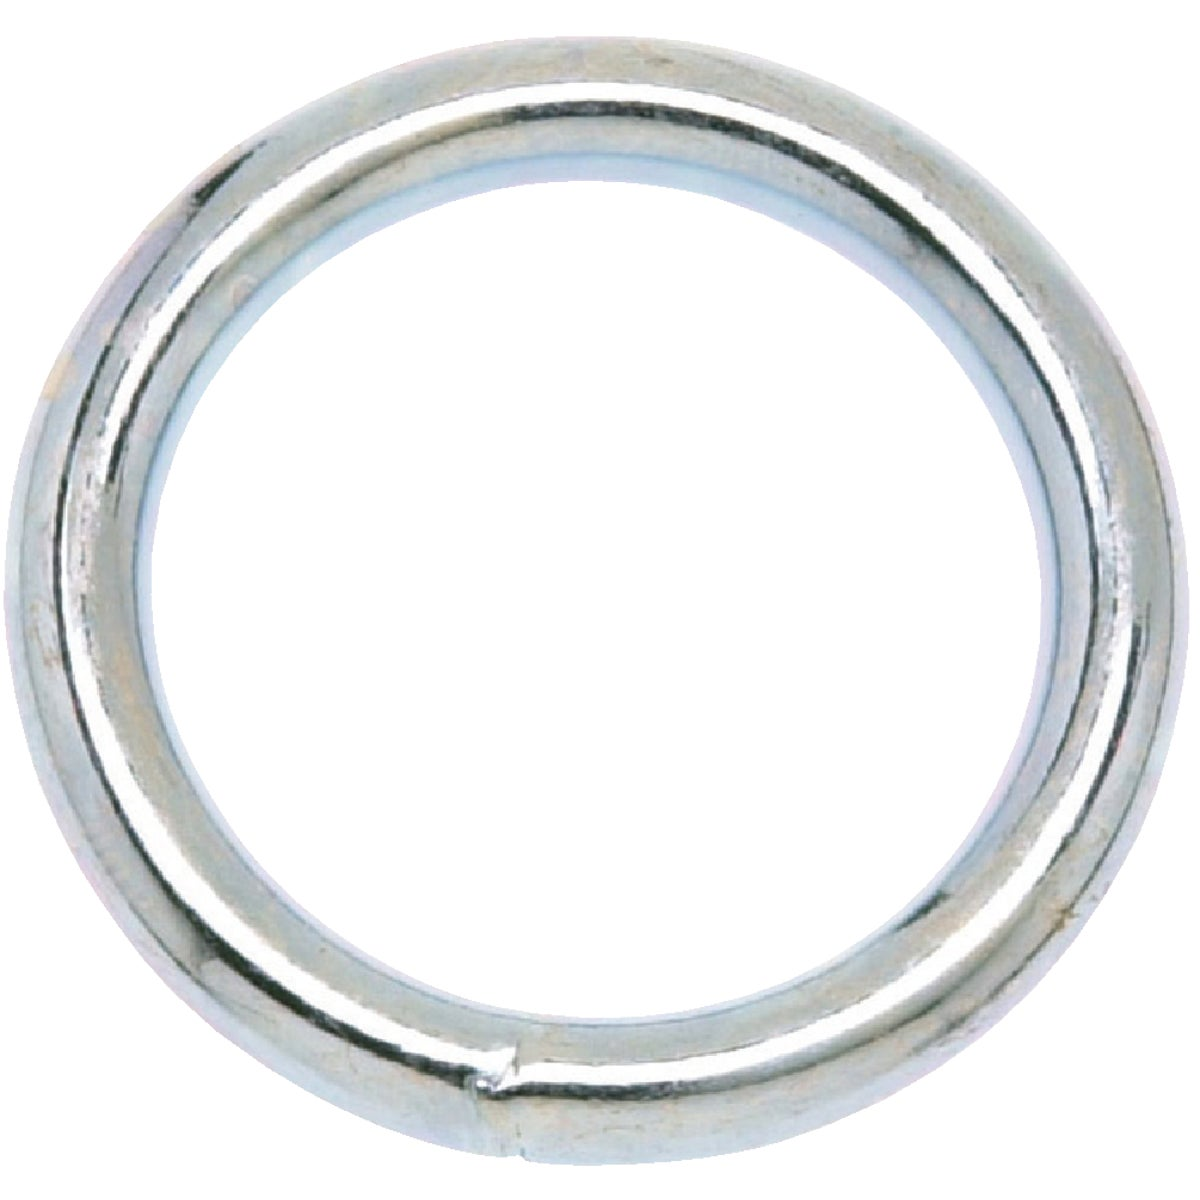 "2"" #3 ROUND RING - T7661152 by Cooper Campbell Apex"